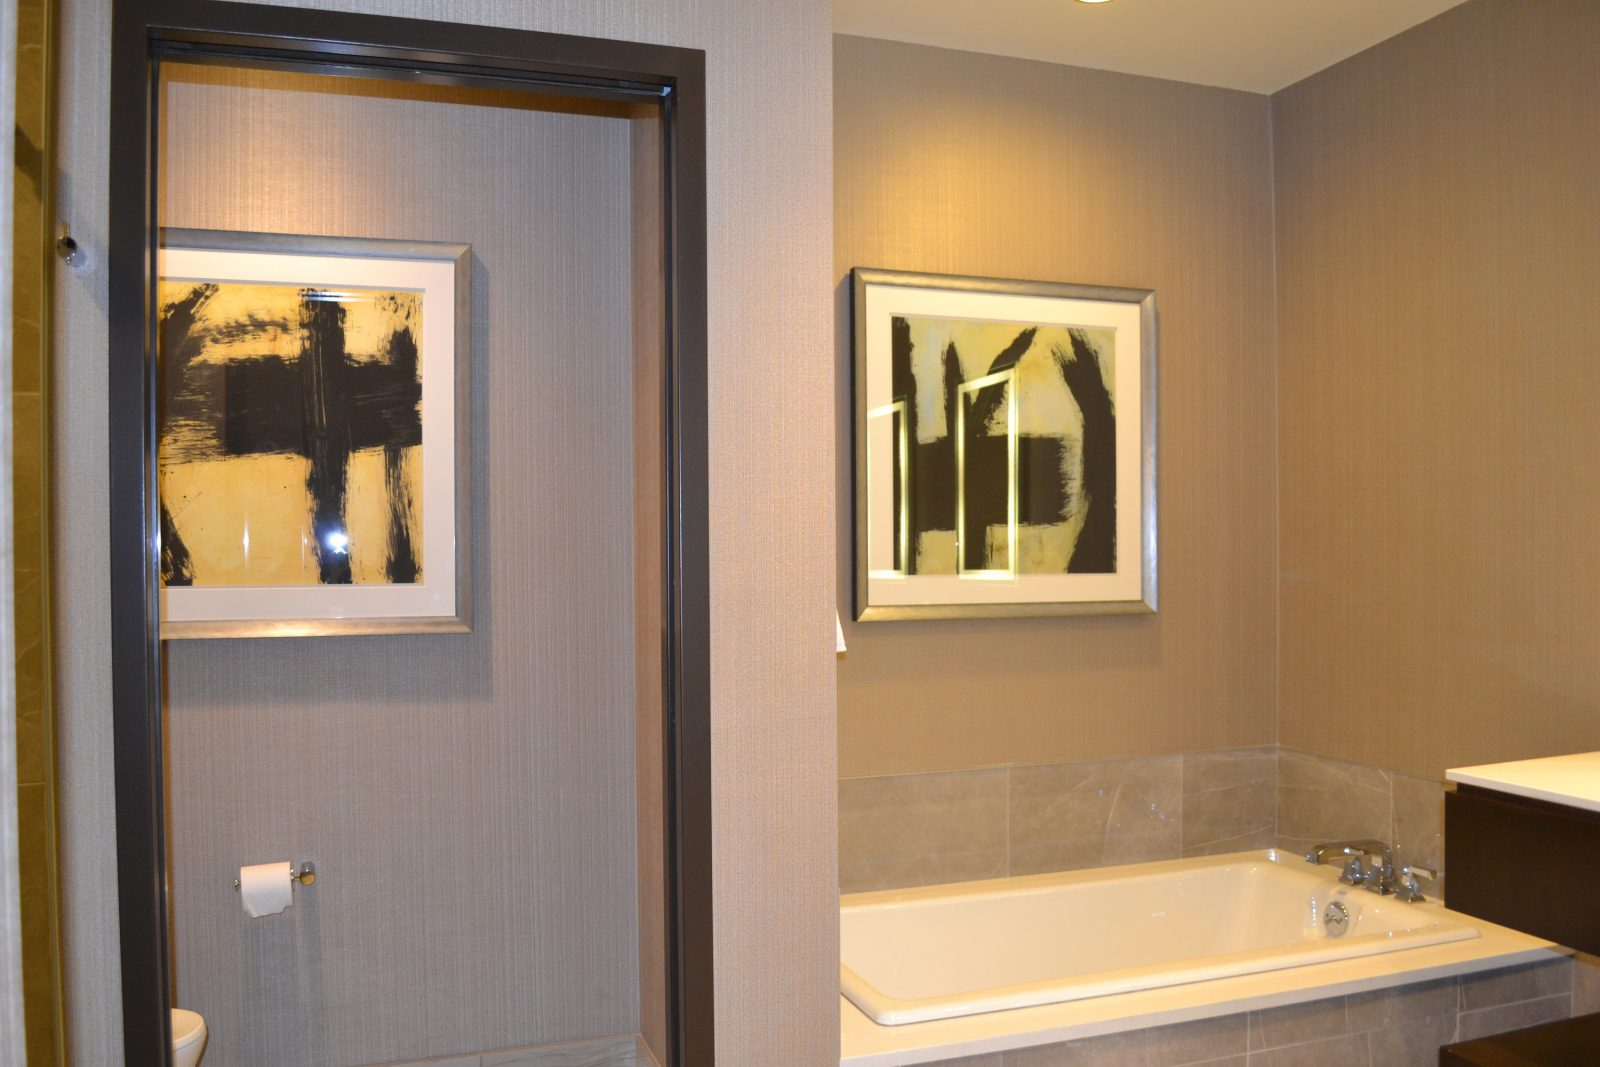 framed artwork in a bathroom